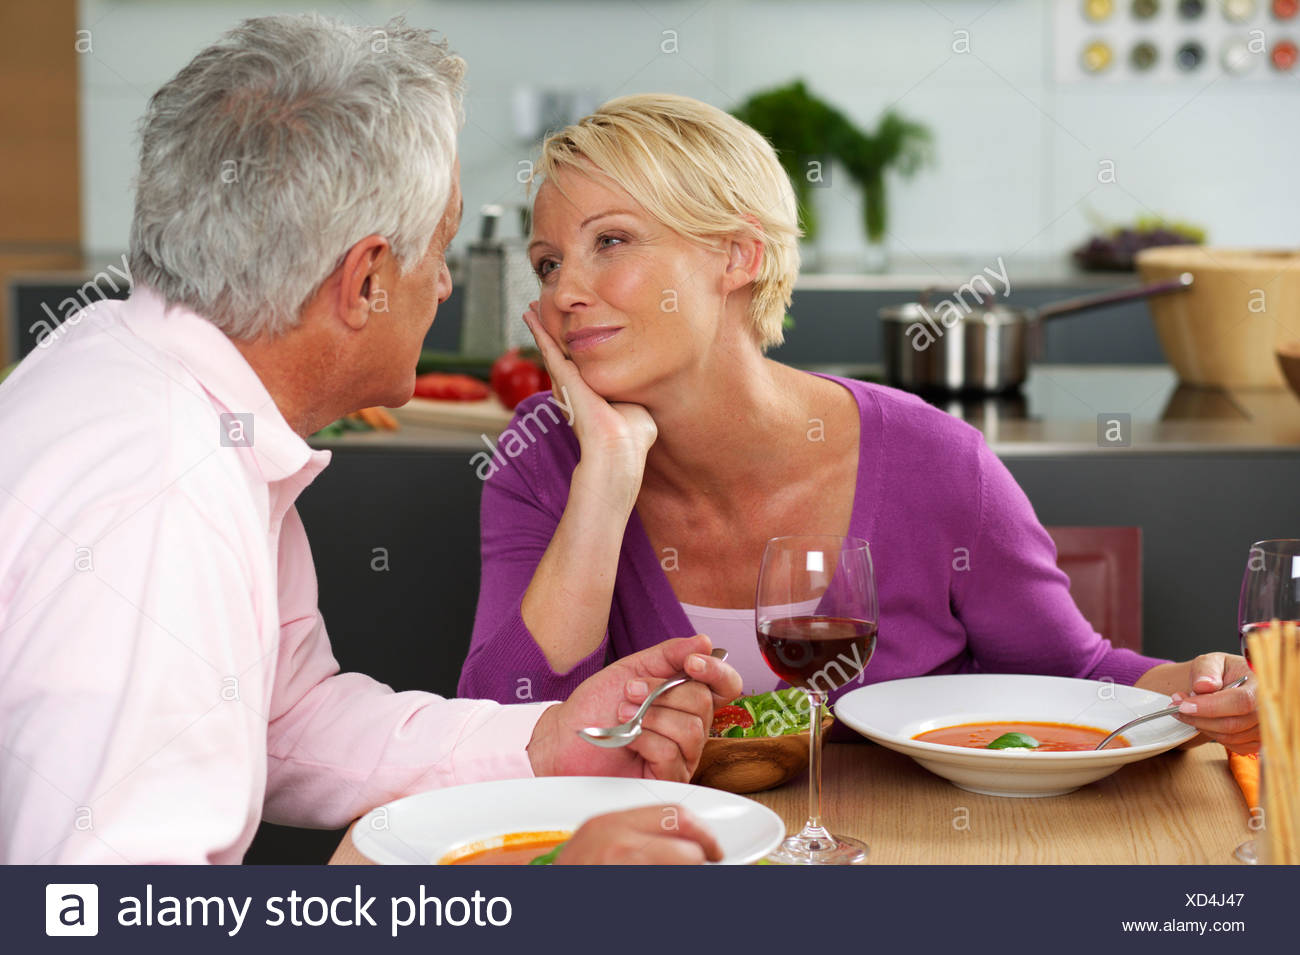 Blonde woman and gray-haired man having dinner, close-up - Stock Image